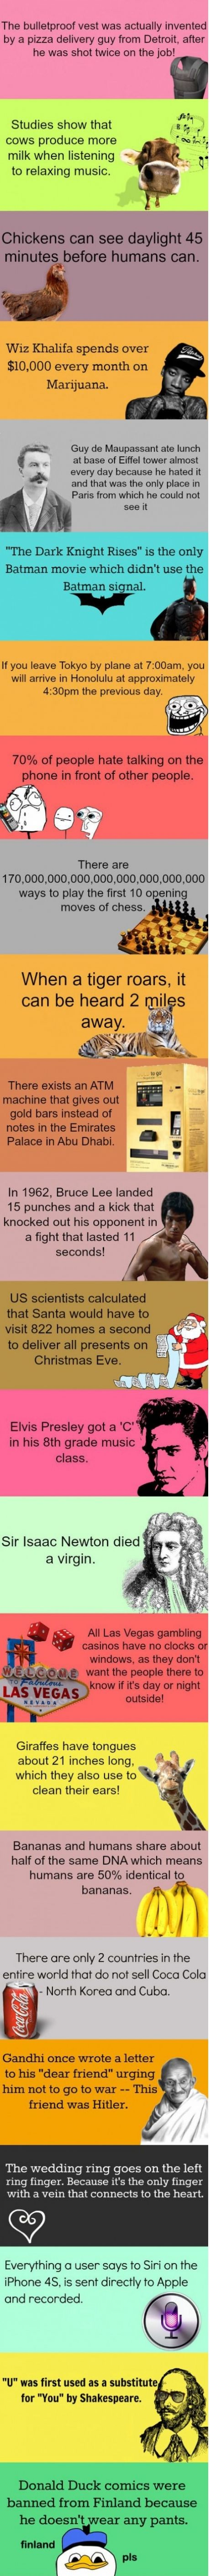 Just some facts, moral of the story.... Bruce Lee is awesome :D